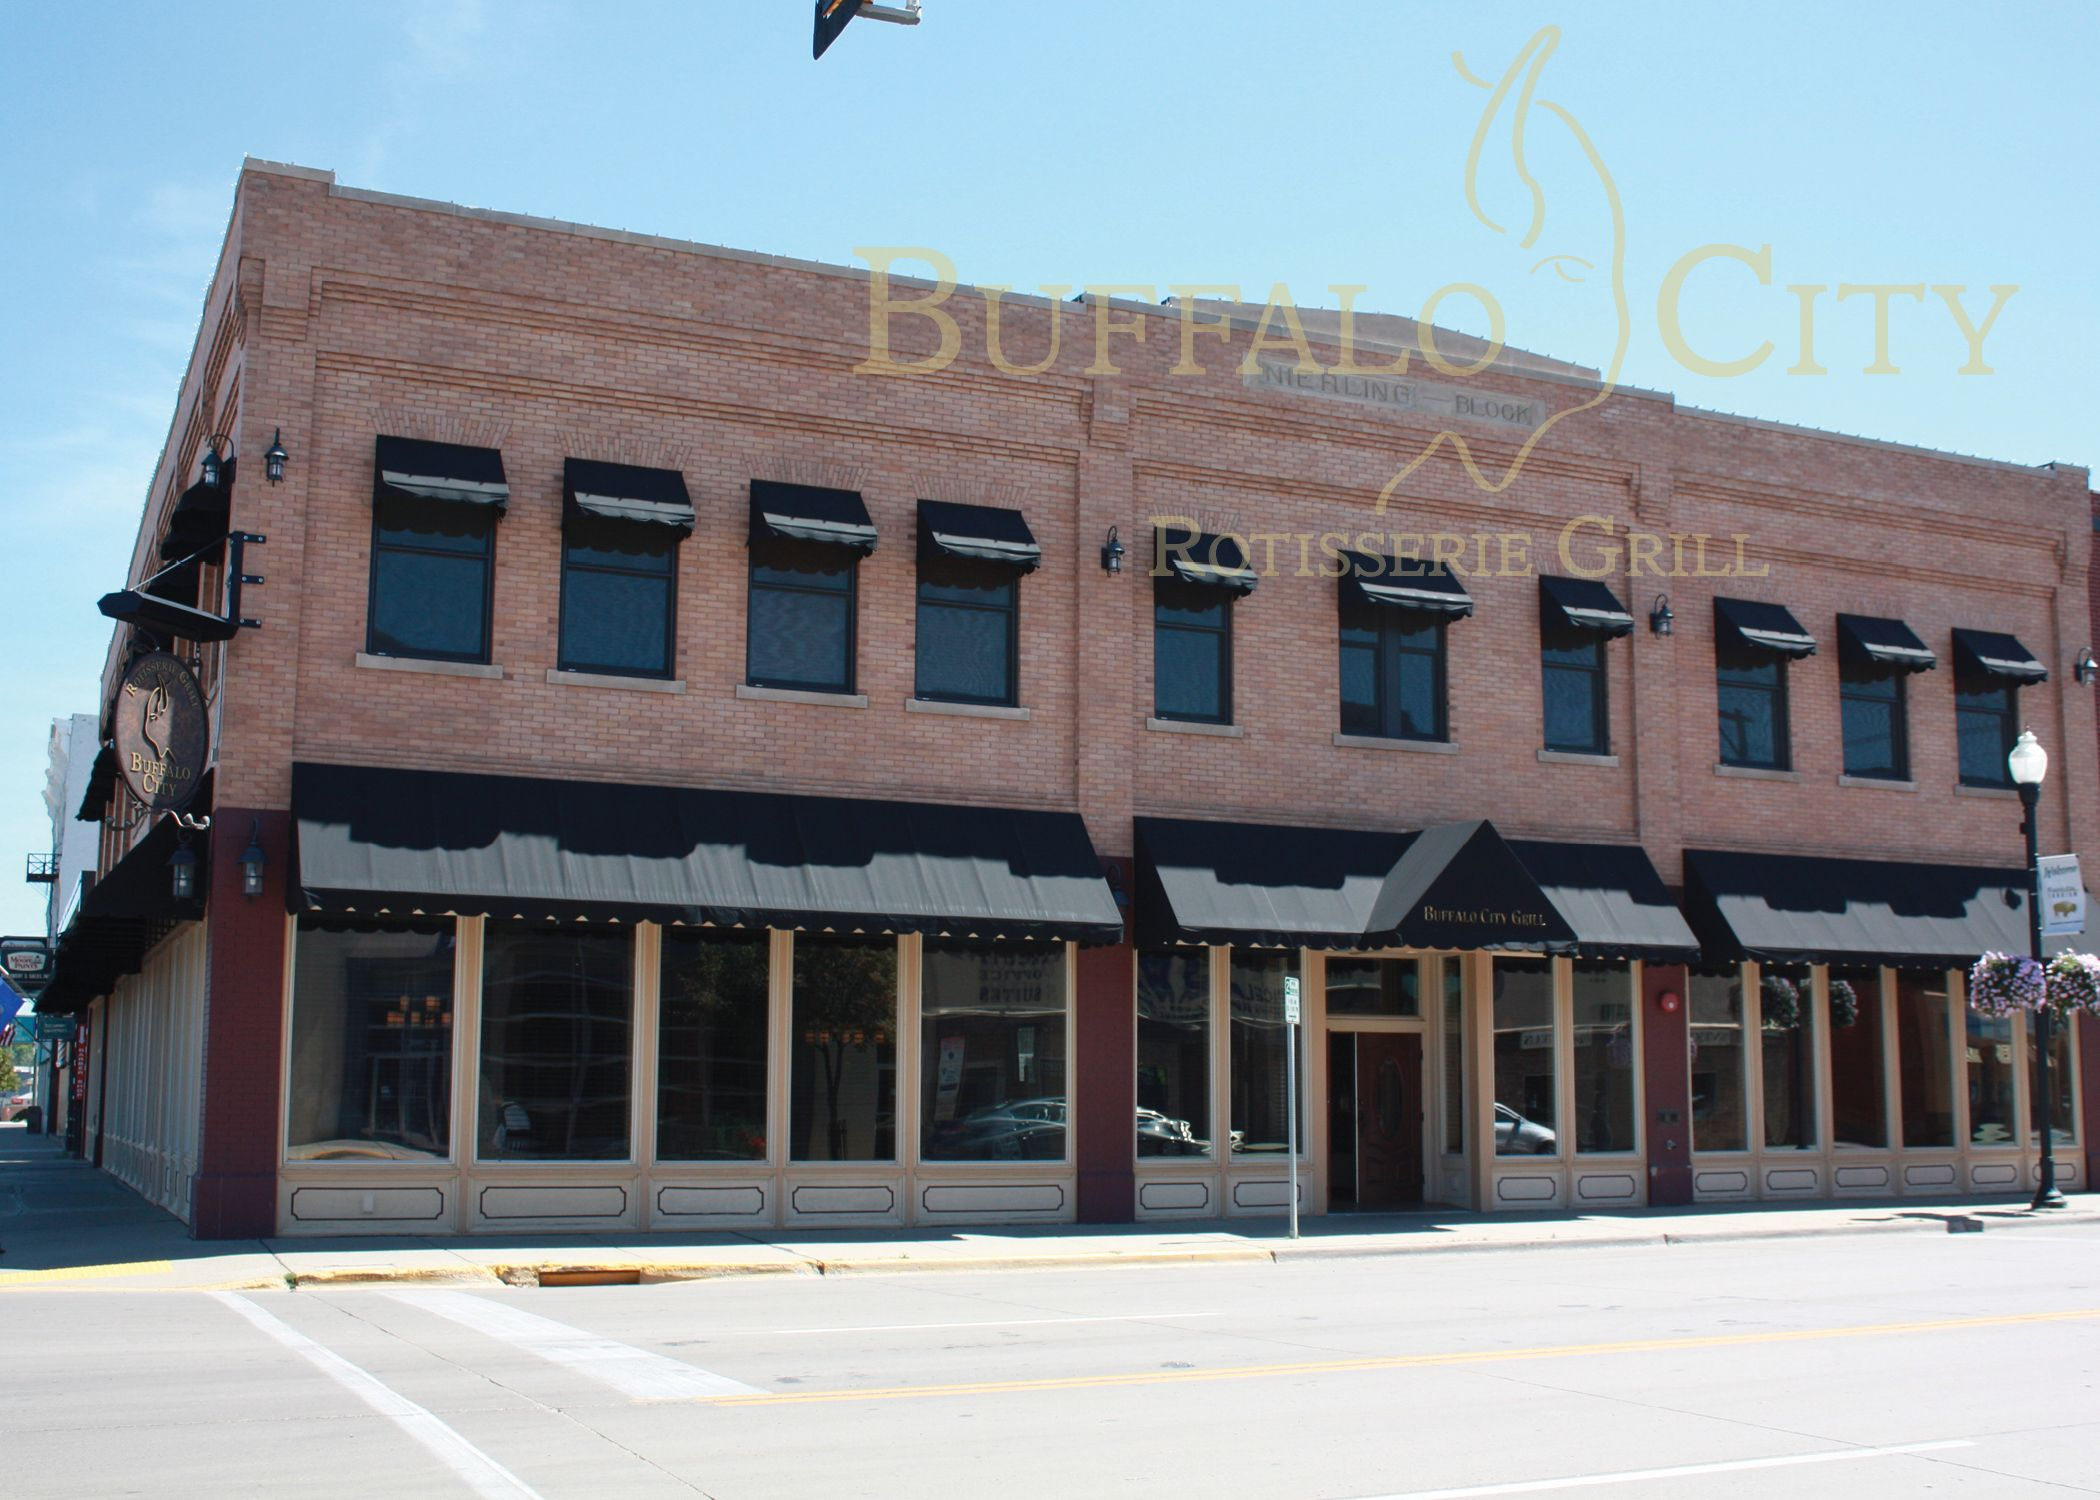 Located In An Over 100 Year Old Building In Downtown Jamestown Nd North Dakota Travel Jamestown Restaurant Photos